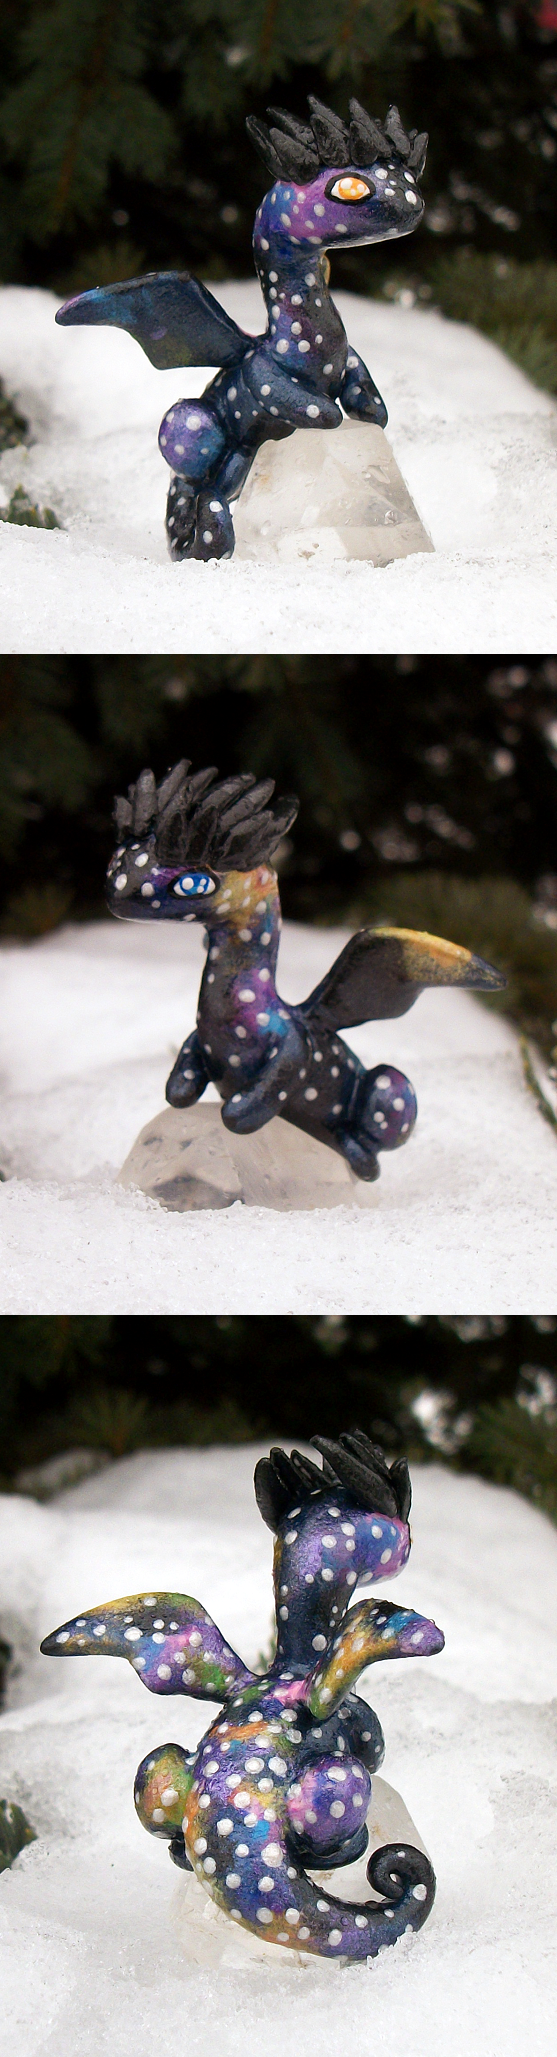 Nebula Dragon by KingMelissa